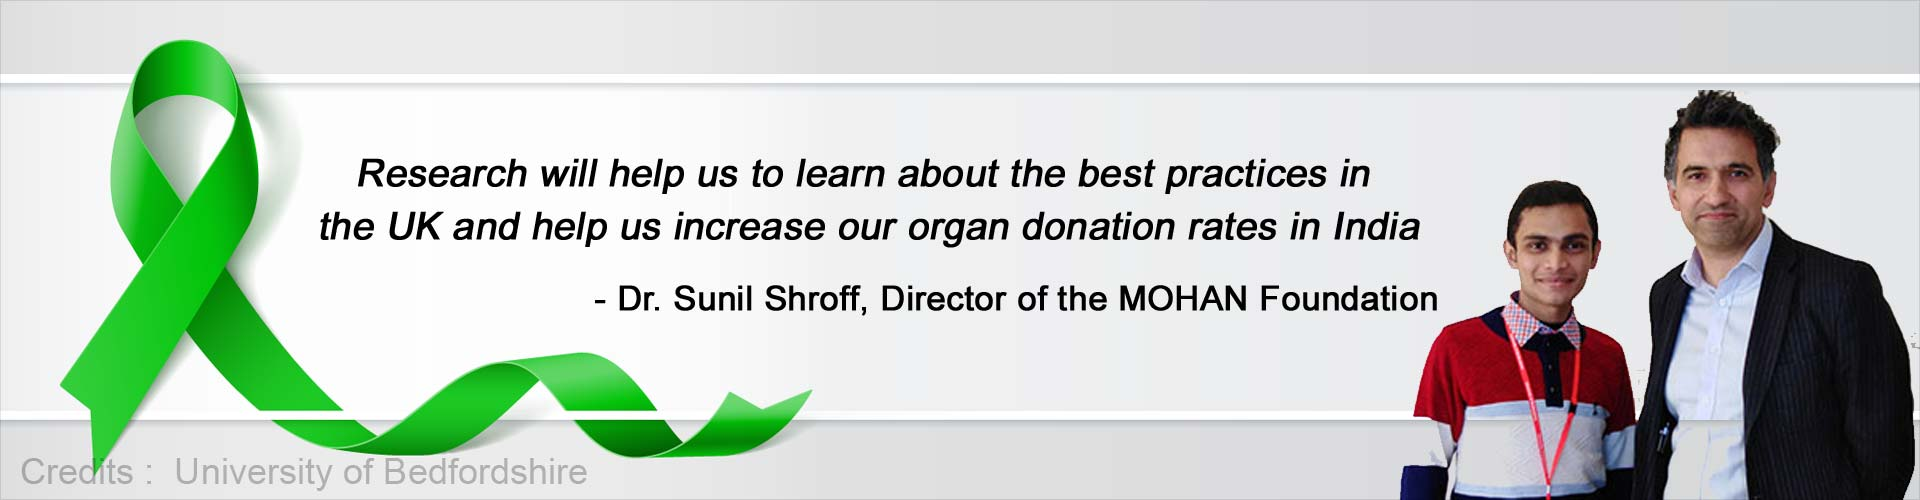 University Research to Improve Organ Donation Rates in India